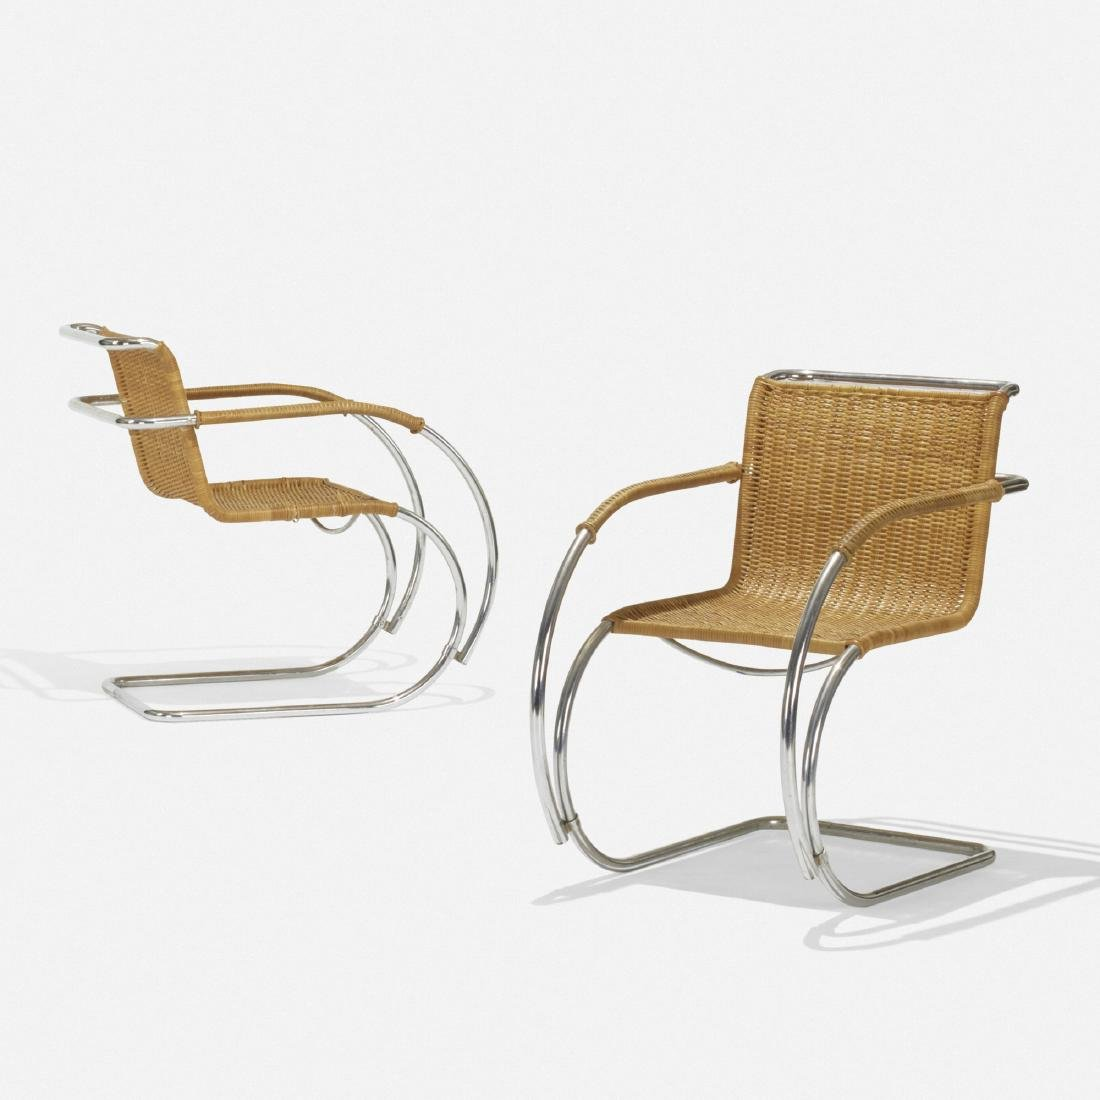 Ludwig Mies van der Rohe, MR20 and MR10 chairs - 3